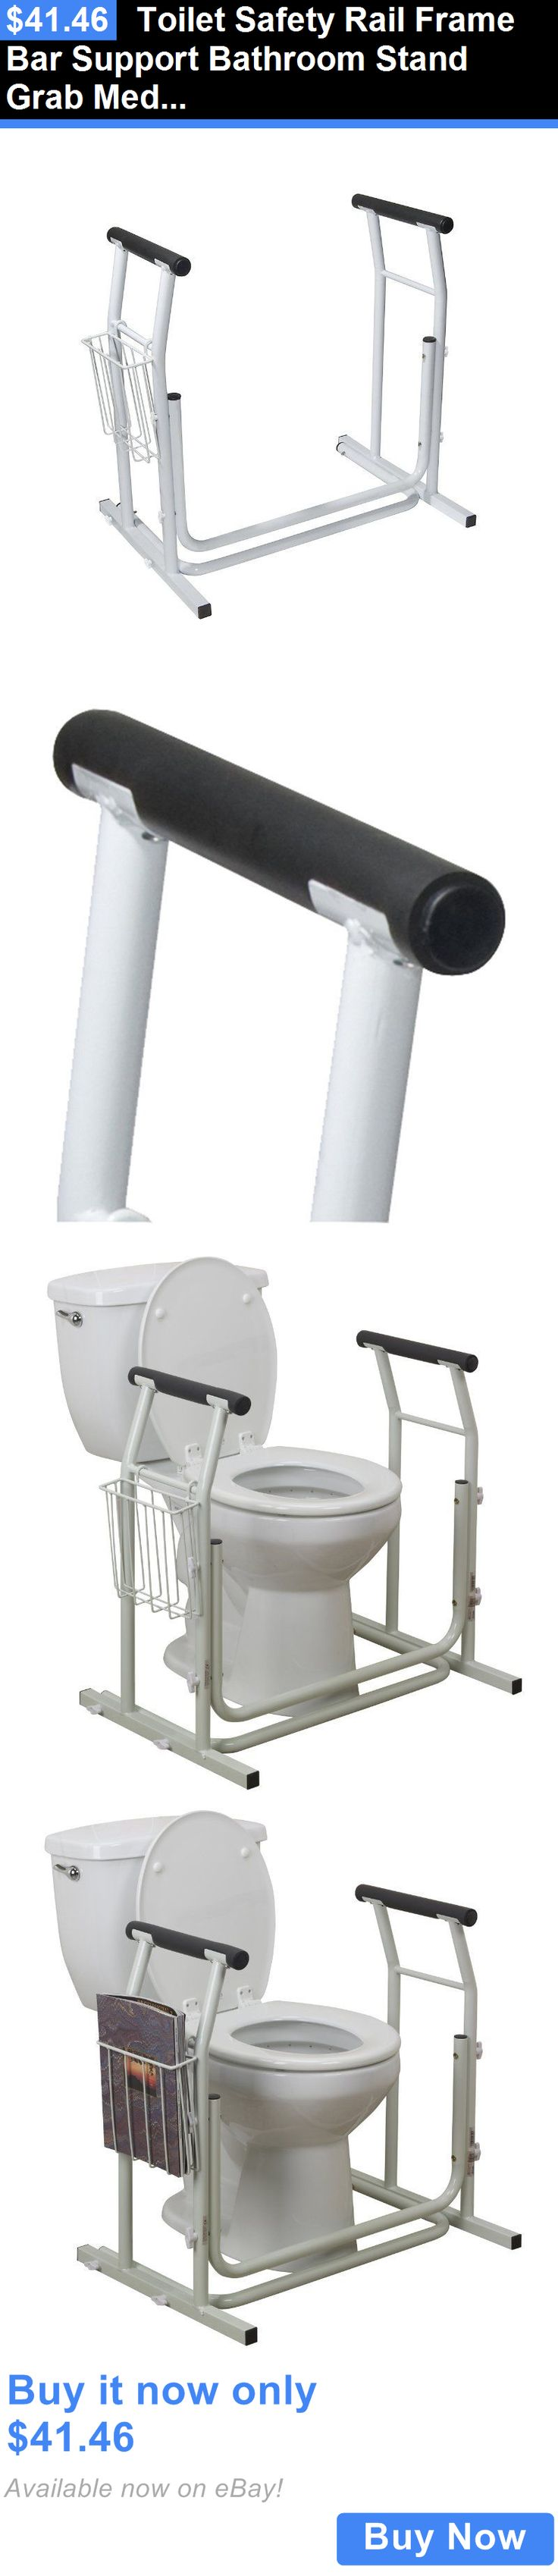 Handles And Rails Toilet Safety Rail Frame Bar Support Bathroom Stand Grab Medical Alone Handicap